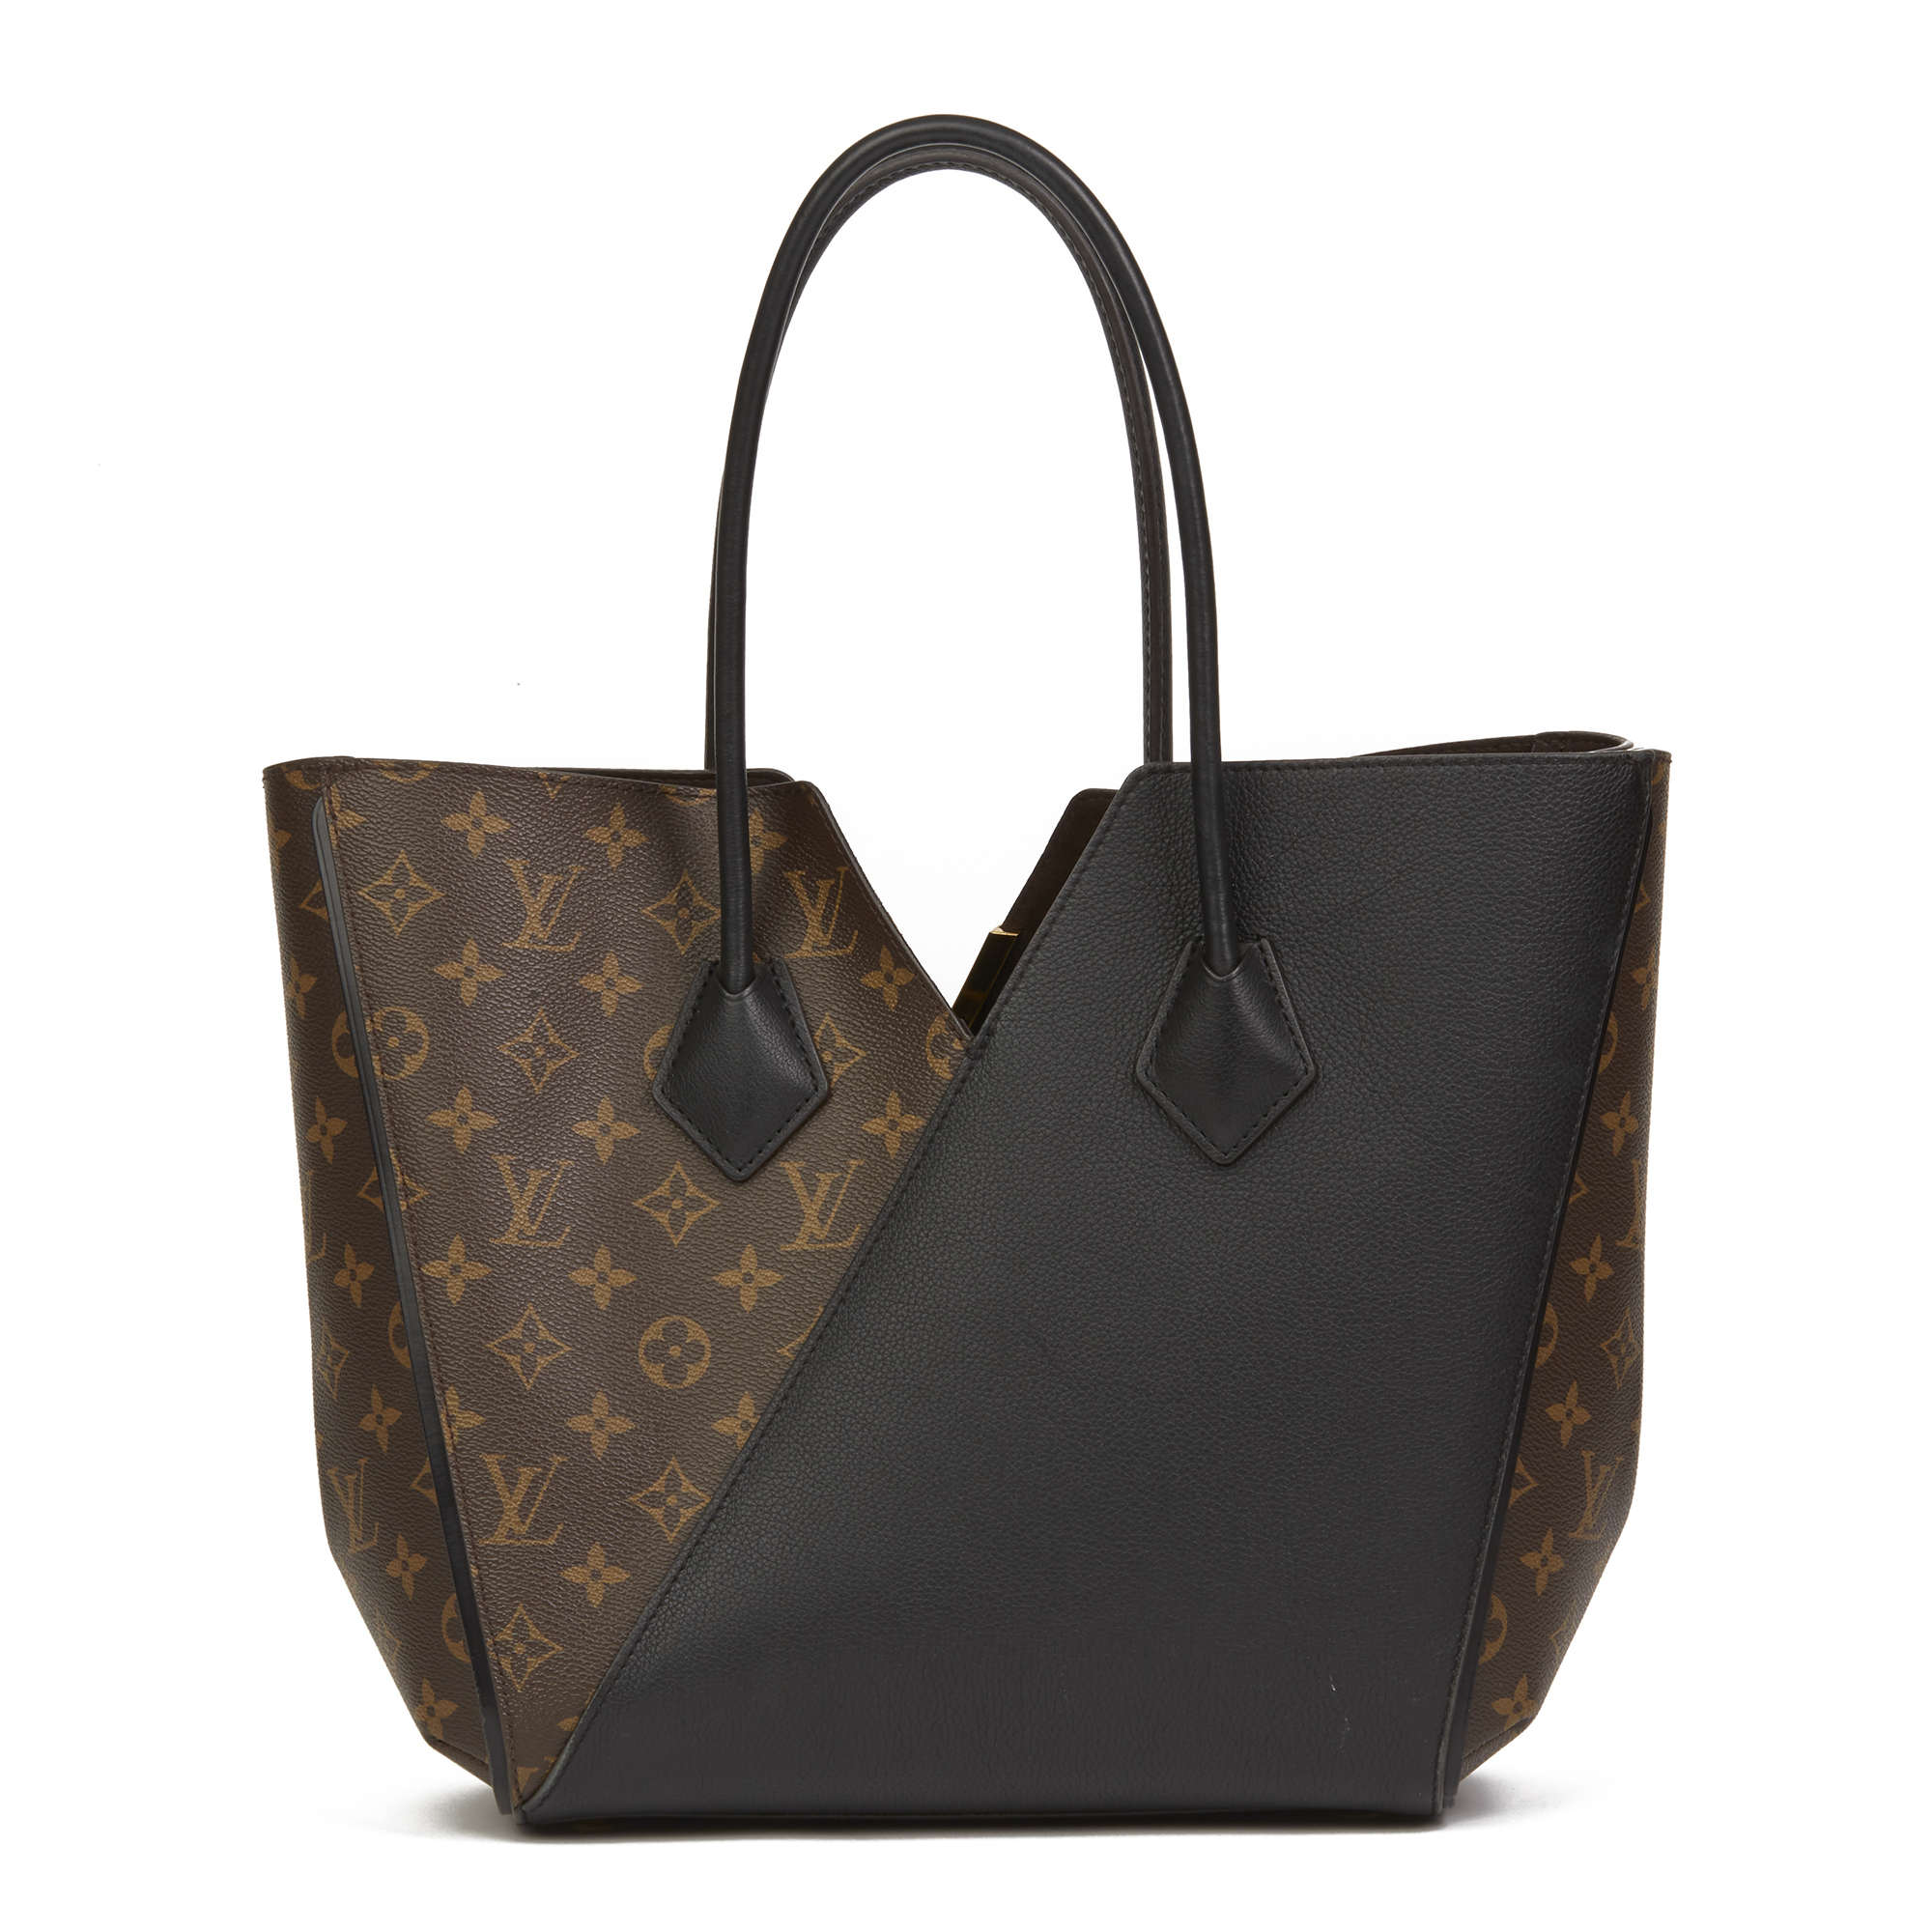 Details about LOUIS VUITTON BROWN MONOGRAM COATED CANVAS   BLACK CALFSKIN  LEATHER KIMONO MM 72b4405a08cdd